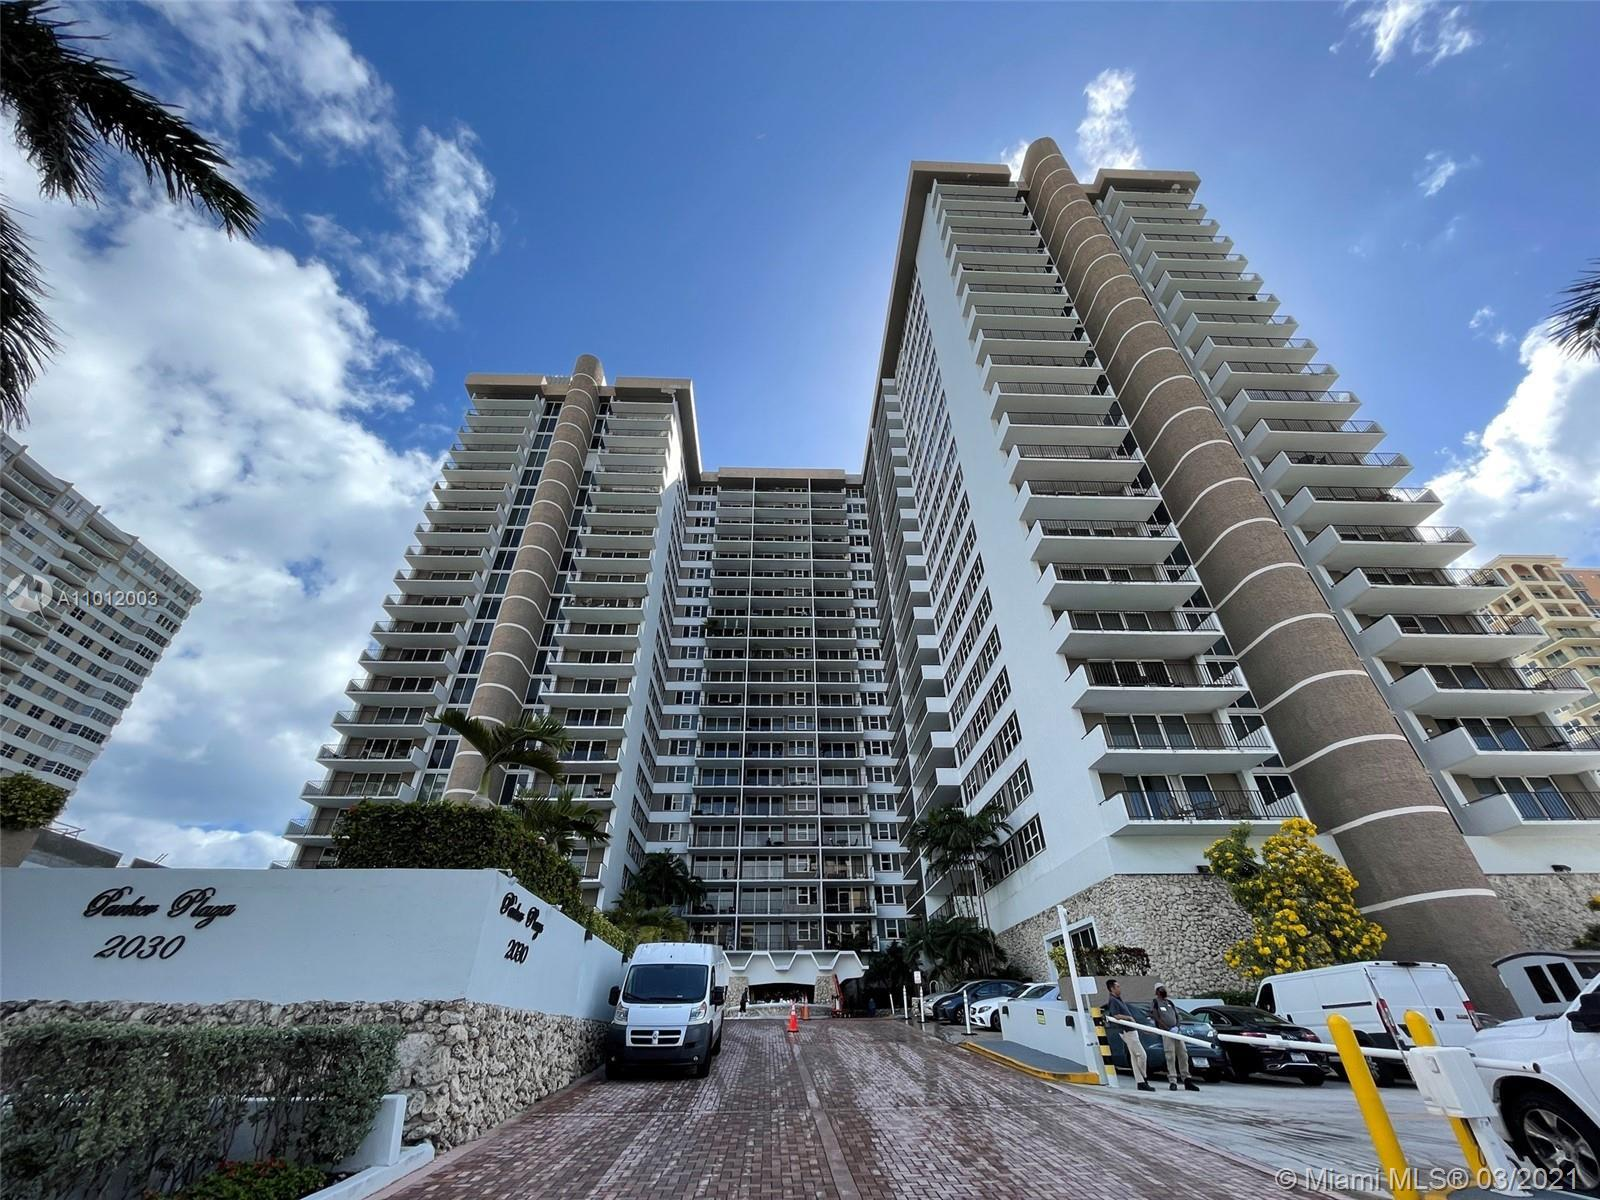 Beautifully remodeled, oceanfront 2bd 2bath unit with ocean and intracoastal views. Very spacious, t